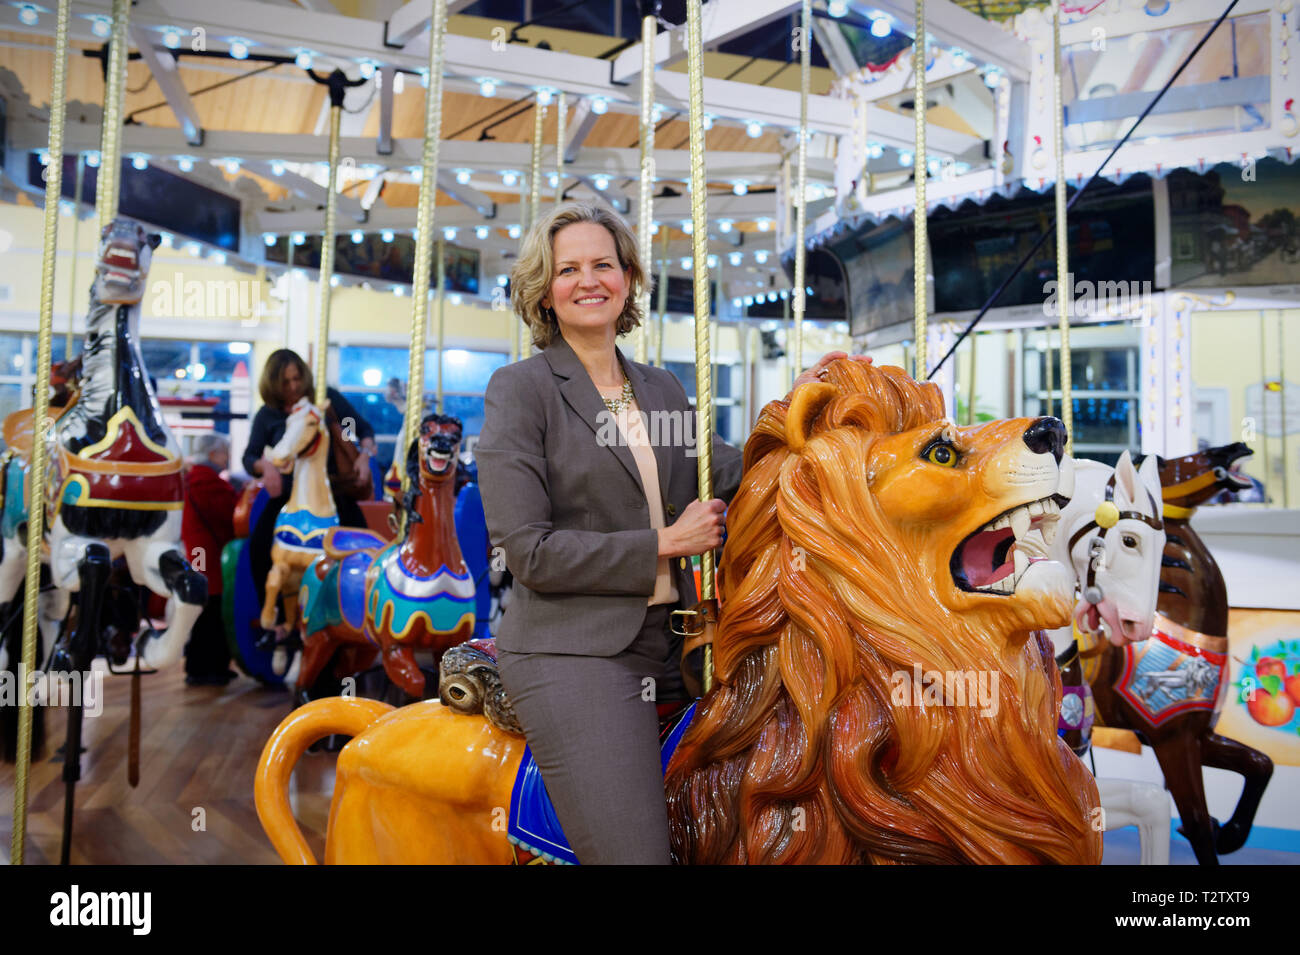 Garden City, New York, USA. 9th Mar, 2019. LAURA CURRAN, the Nassau County Executive, rides Nunley's Carousel carved wood lion during mural unveiling ceremony of Nunley's Carousel horse. Event was held at historic Nunley's Carousel in its Pavilion on Museum Row, Long Island. Credit: Ann Parry/ZUMA Wire/Alamy Live News Stock Photo